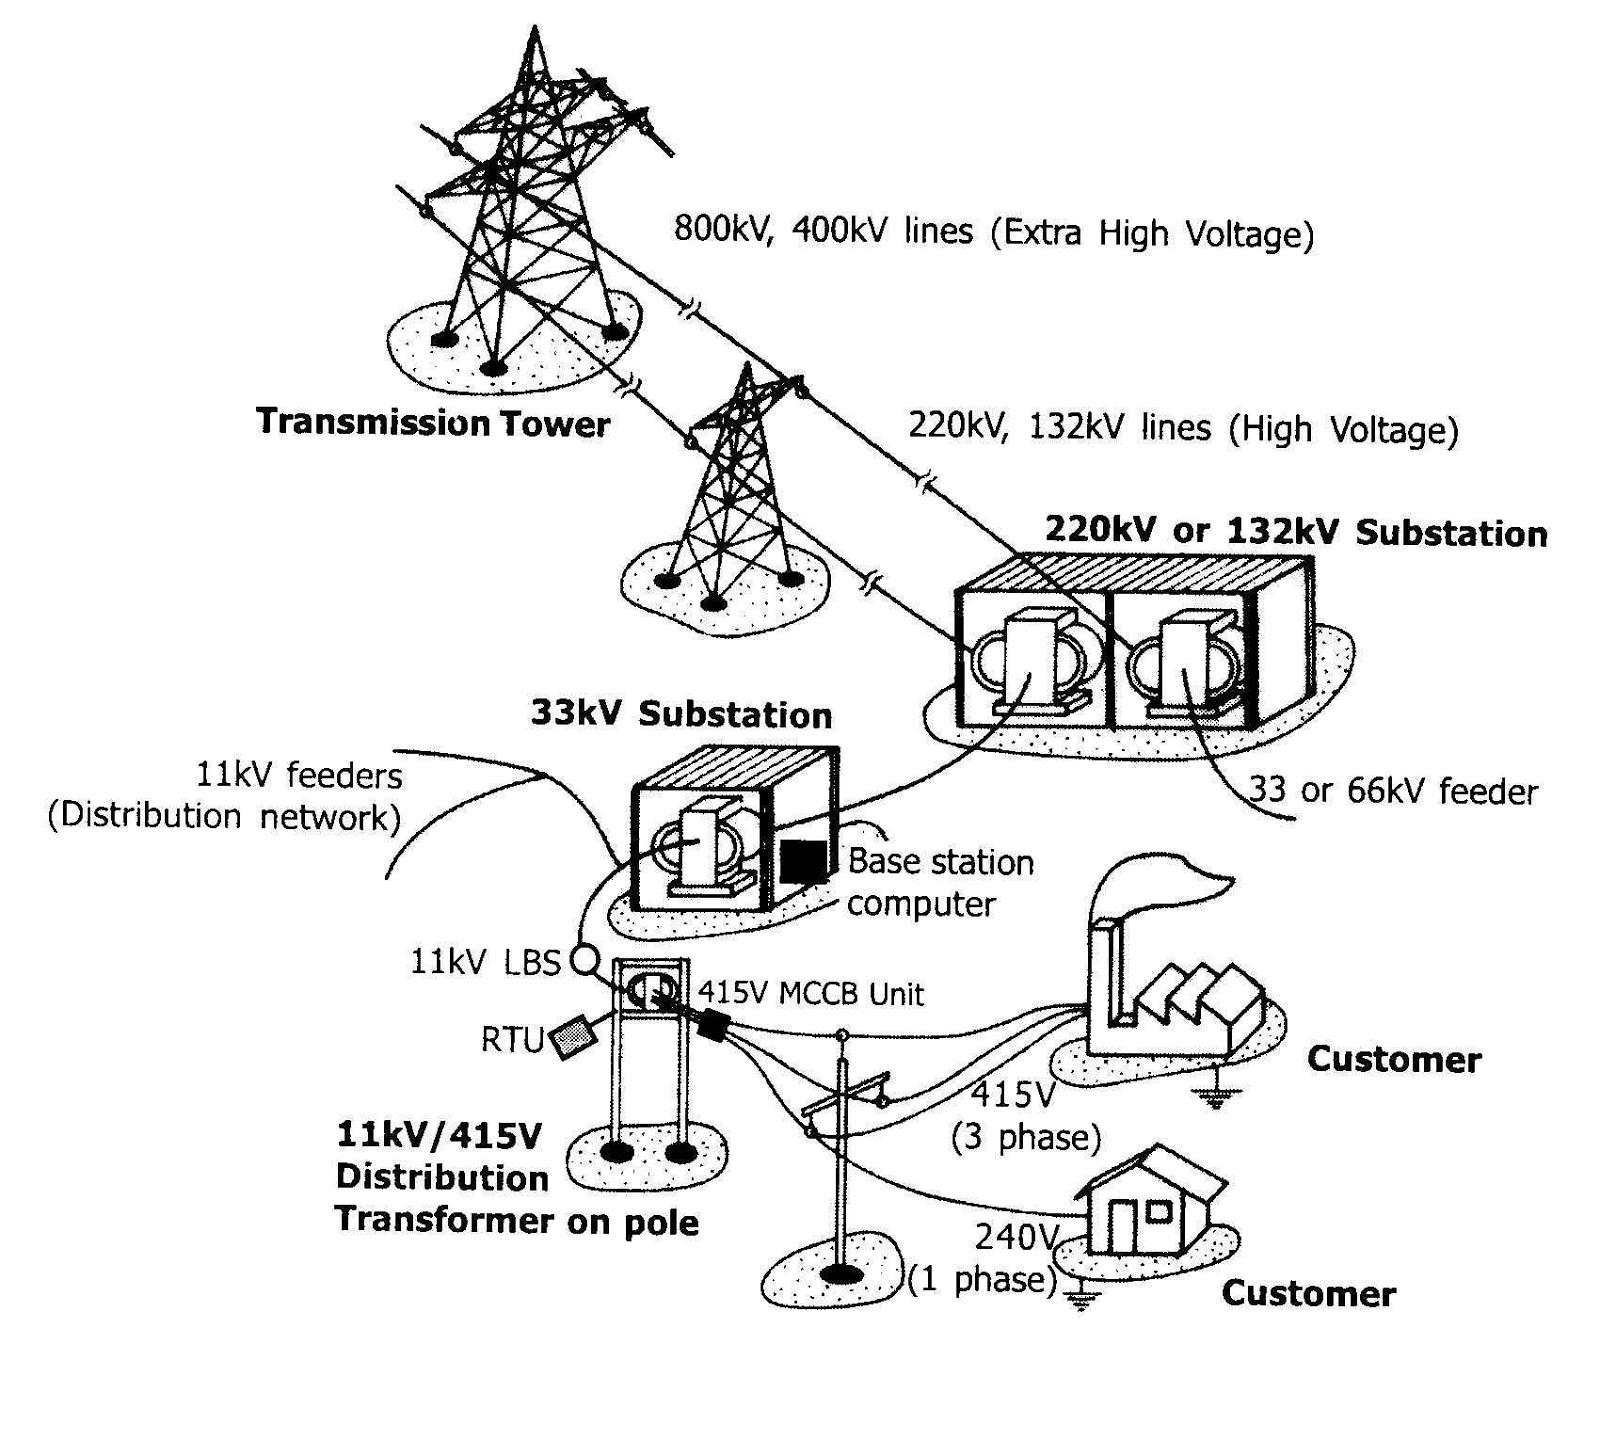 small resolution of typical power transmission and distribution scenario